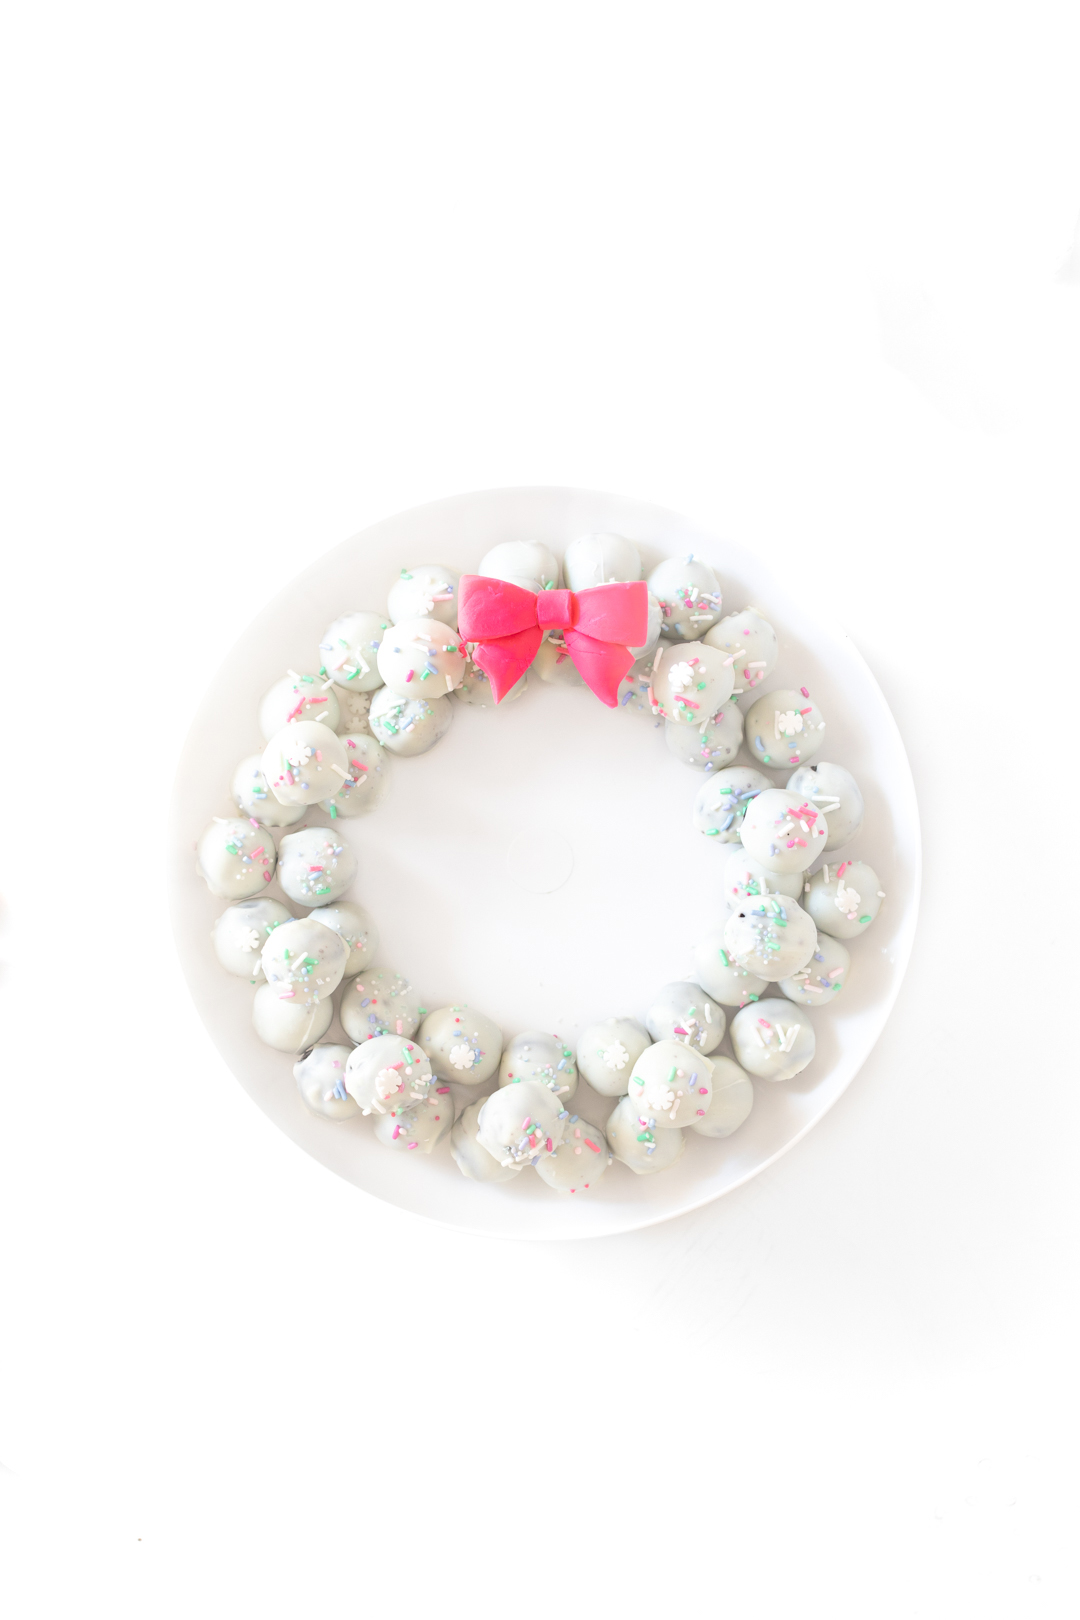 pretty OREO cookie wreath made with white OREO cookie balls and a fondant pink bow.